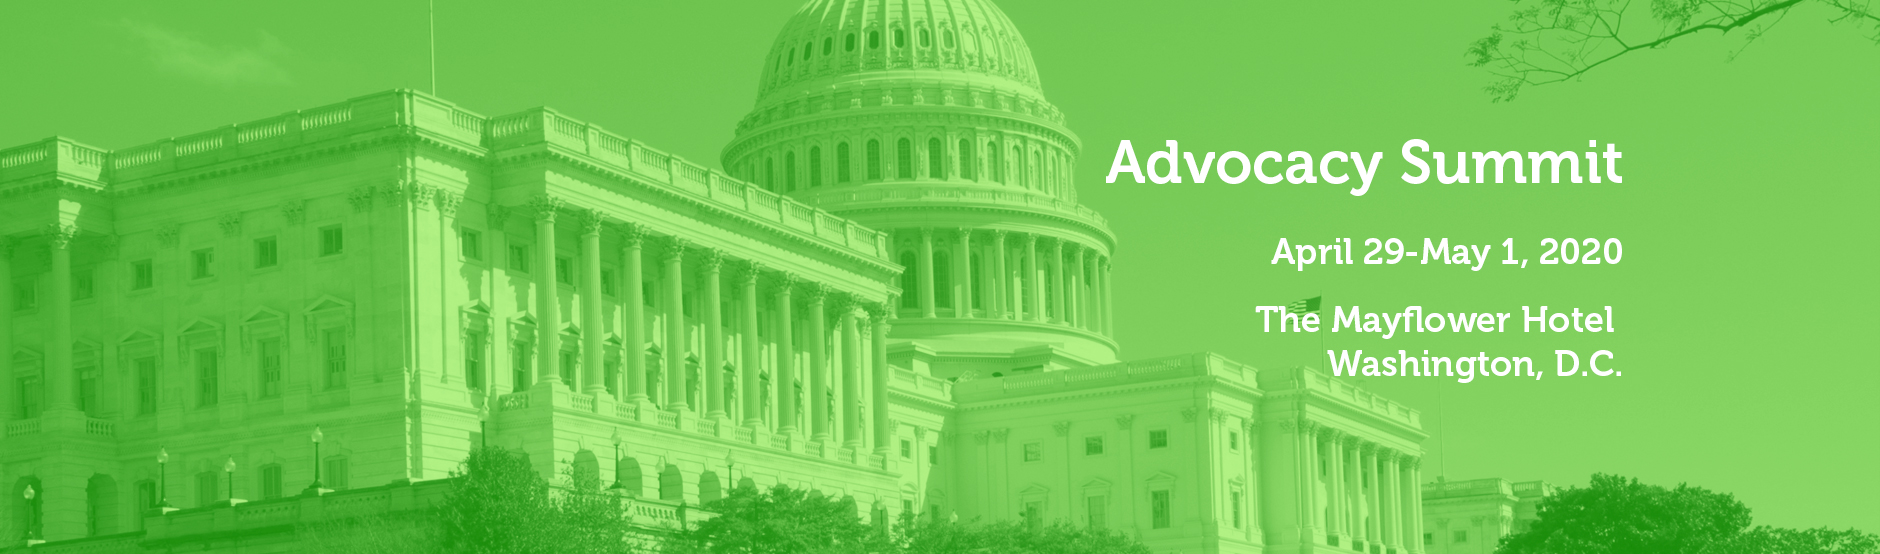 Advocacy-Summit-Events-Page